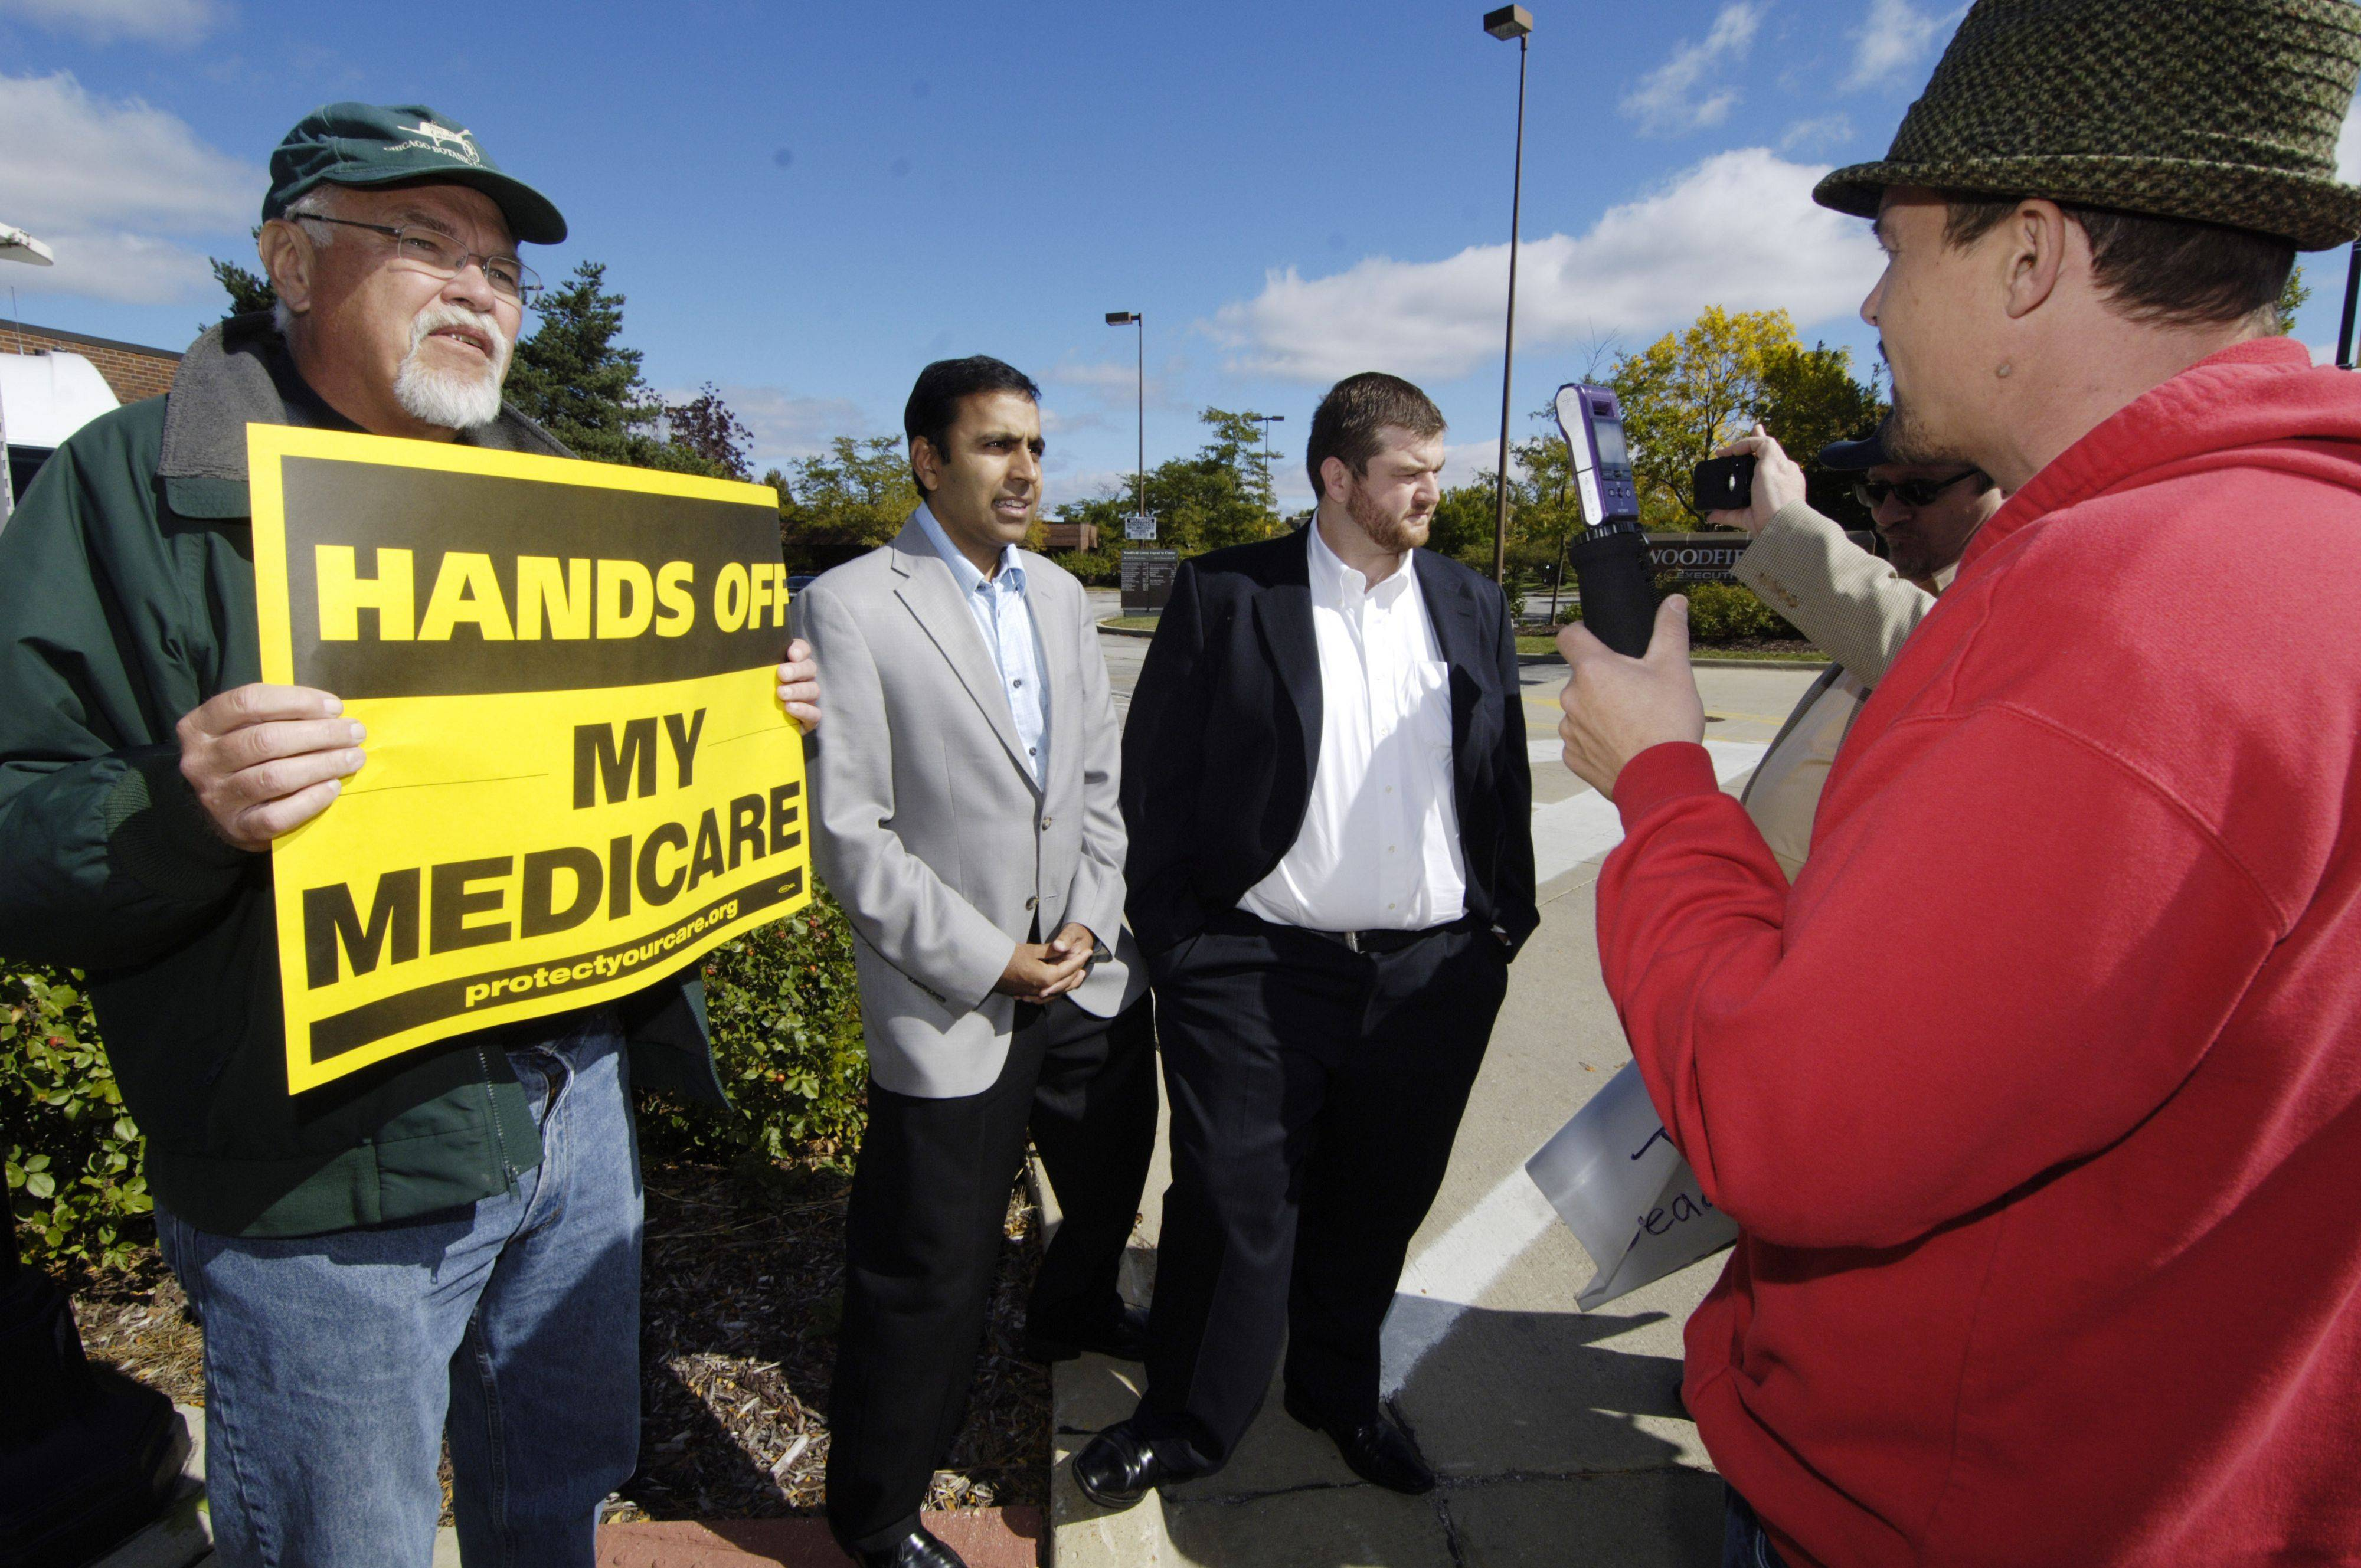 TeaCon supporter Adam Sharp, right, of St. Louis confronts counter-protester Alan Prochaska of Hoffman Estates as well as congressional candidate Raja Krishnamoorthi and his campaign spokesman Mike Murray, with a video camera in hand outside the Midwest Tea Party Convention, at the Renaissance Hotel in Schaumburg Saturday.